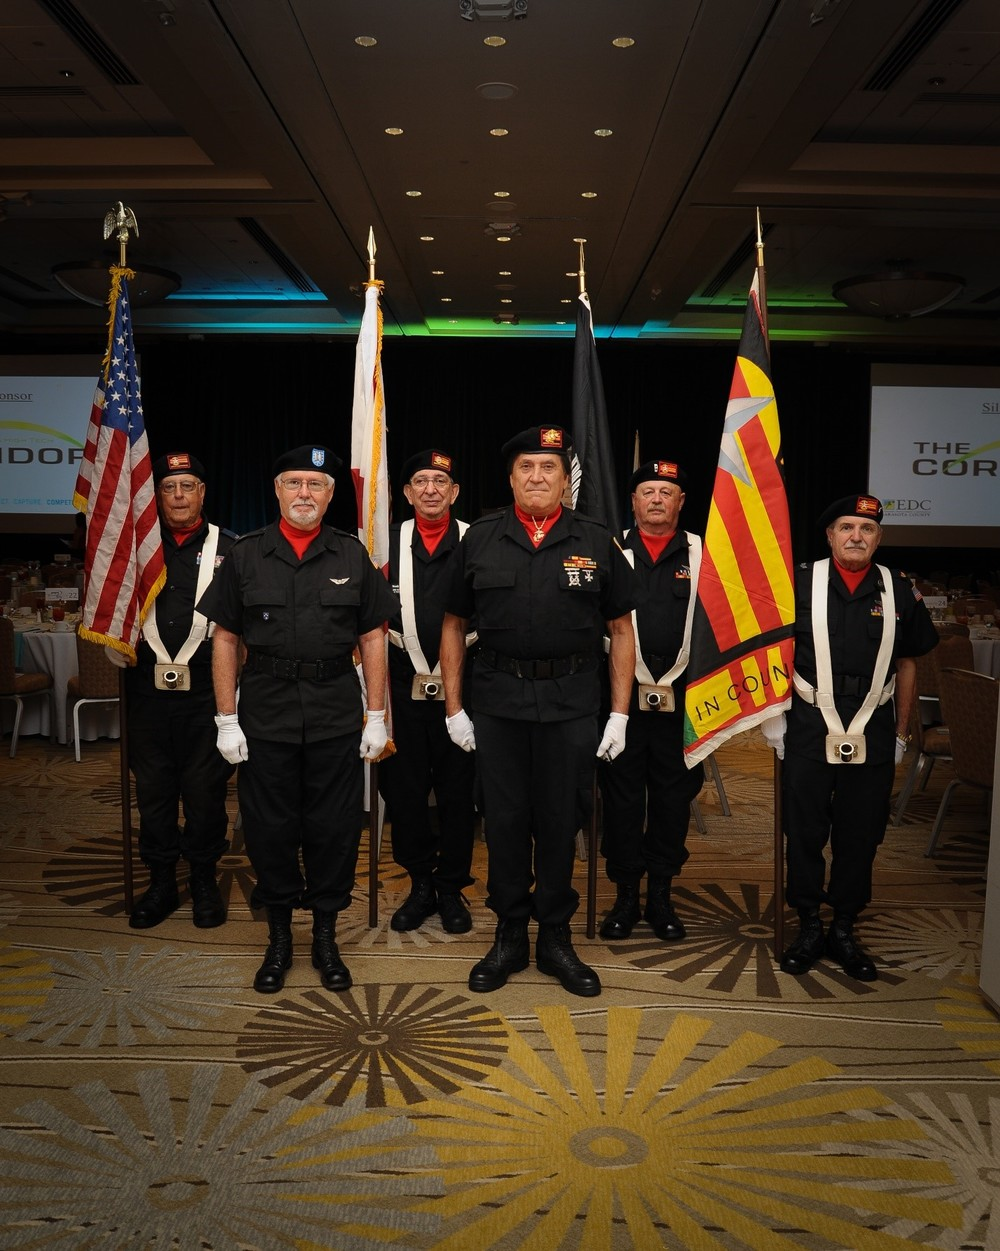 The Sarasota Chapter of the Vietnam Veterans Brotherhood graciously presented the colors to open the program, which was followed by a beautiful rendition of the National Anthem performed by a member of the Alpha Company's talented team.